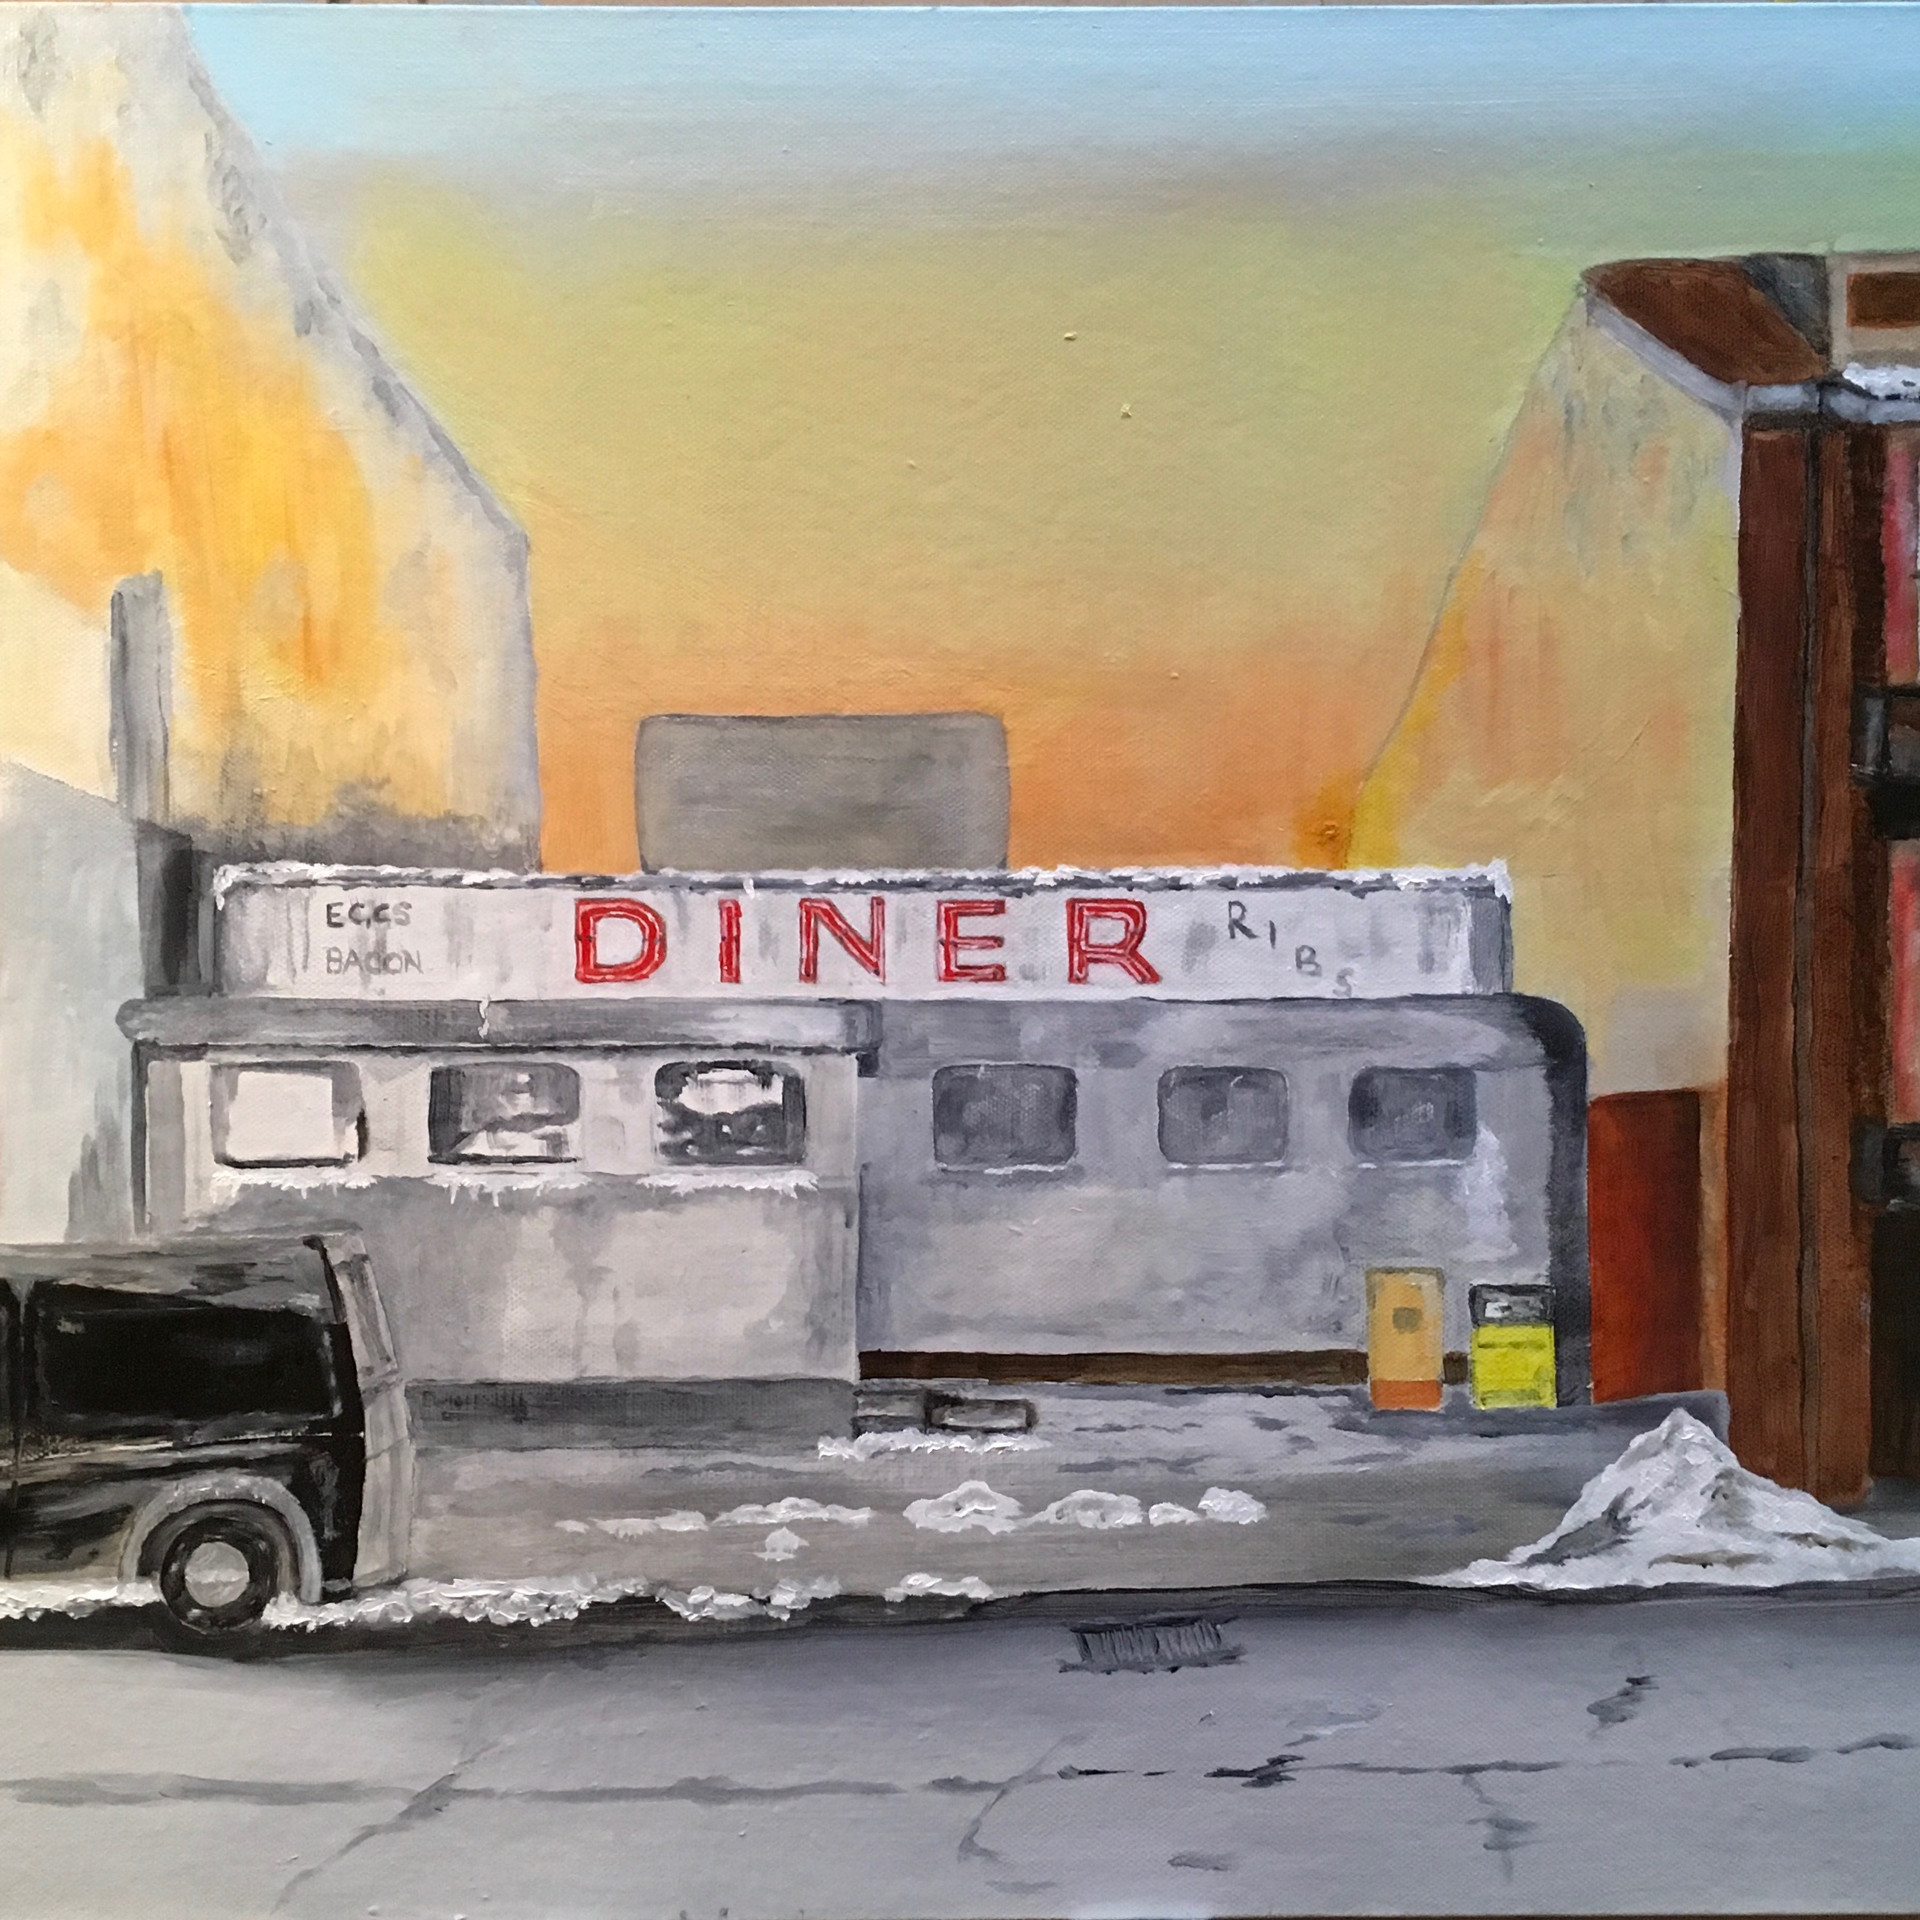 A DINER IN A VACANT SPACE IN CENTRAL NEW YORK